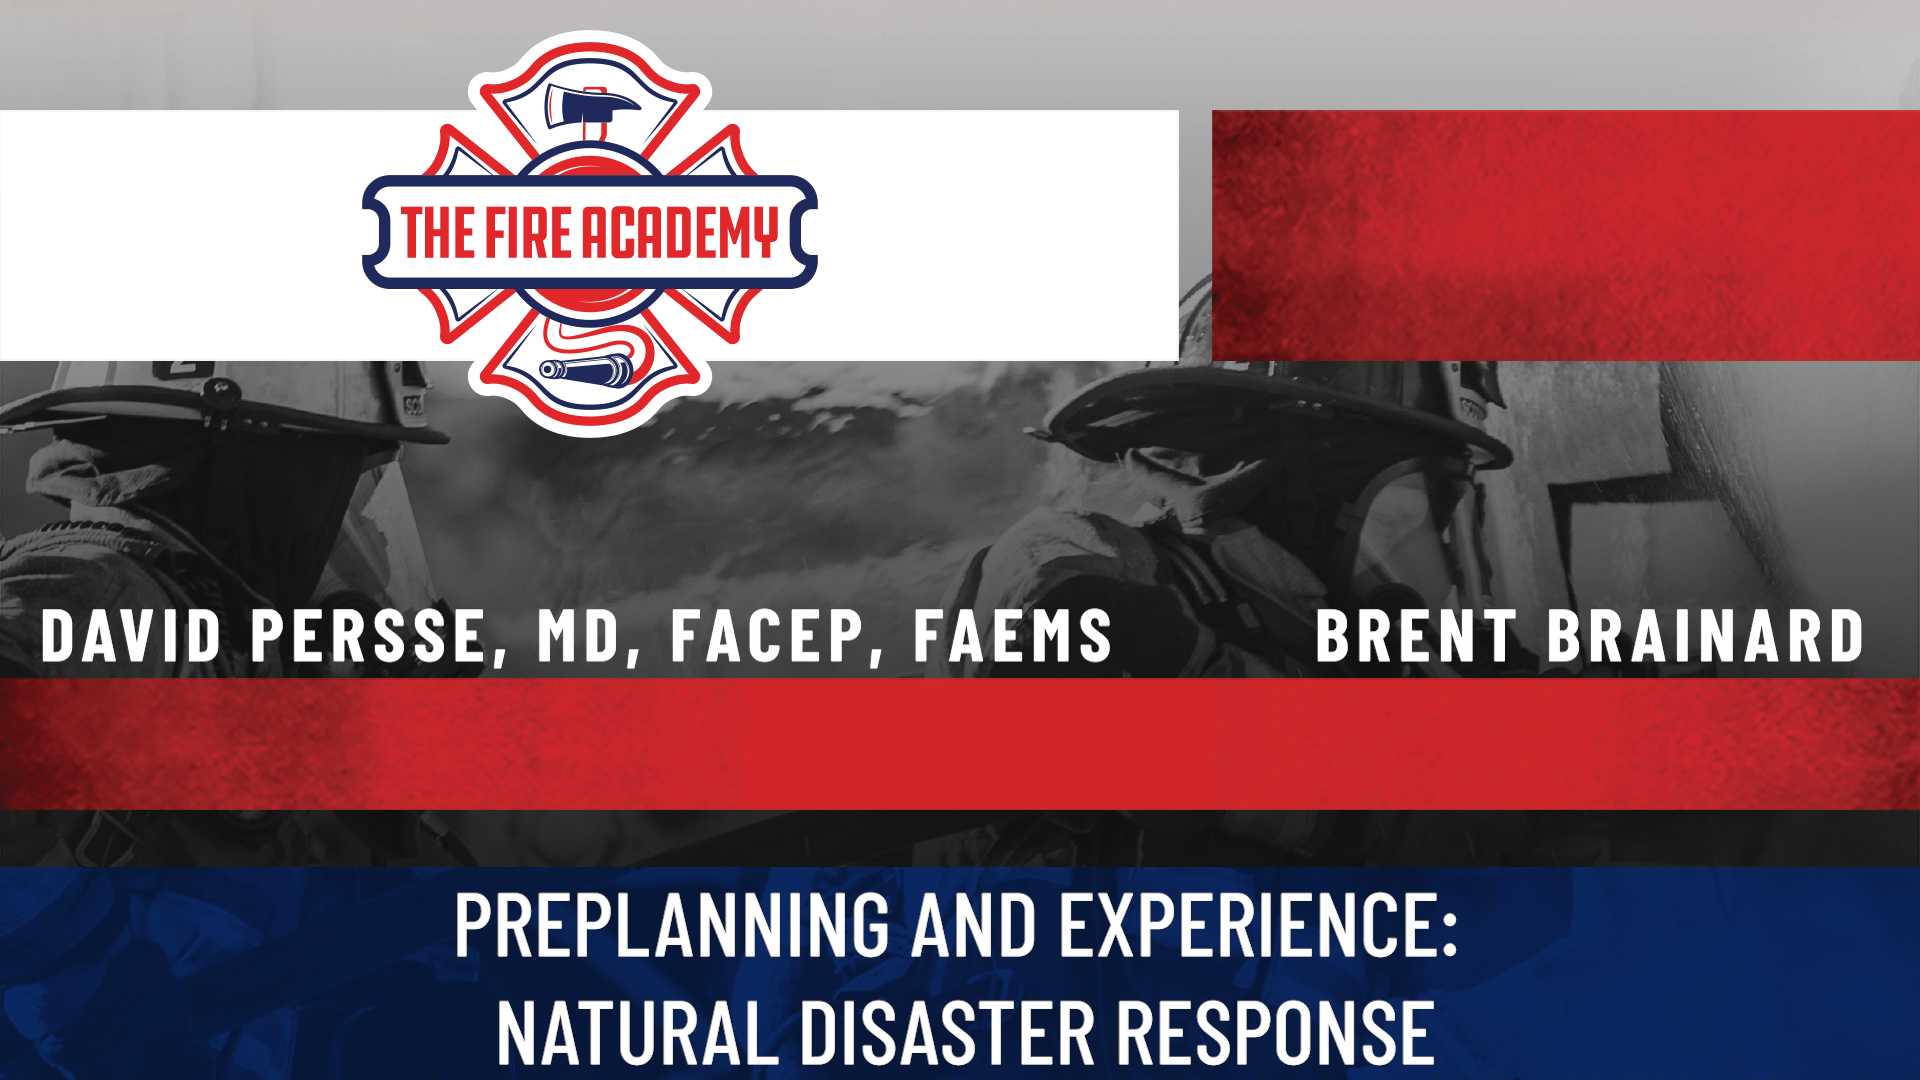 Preplanning and Experience: Natural Disaster Response